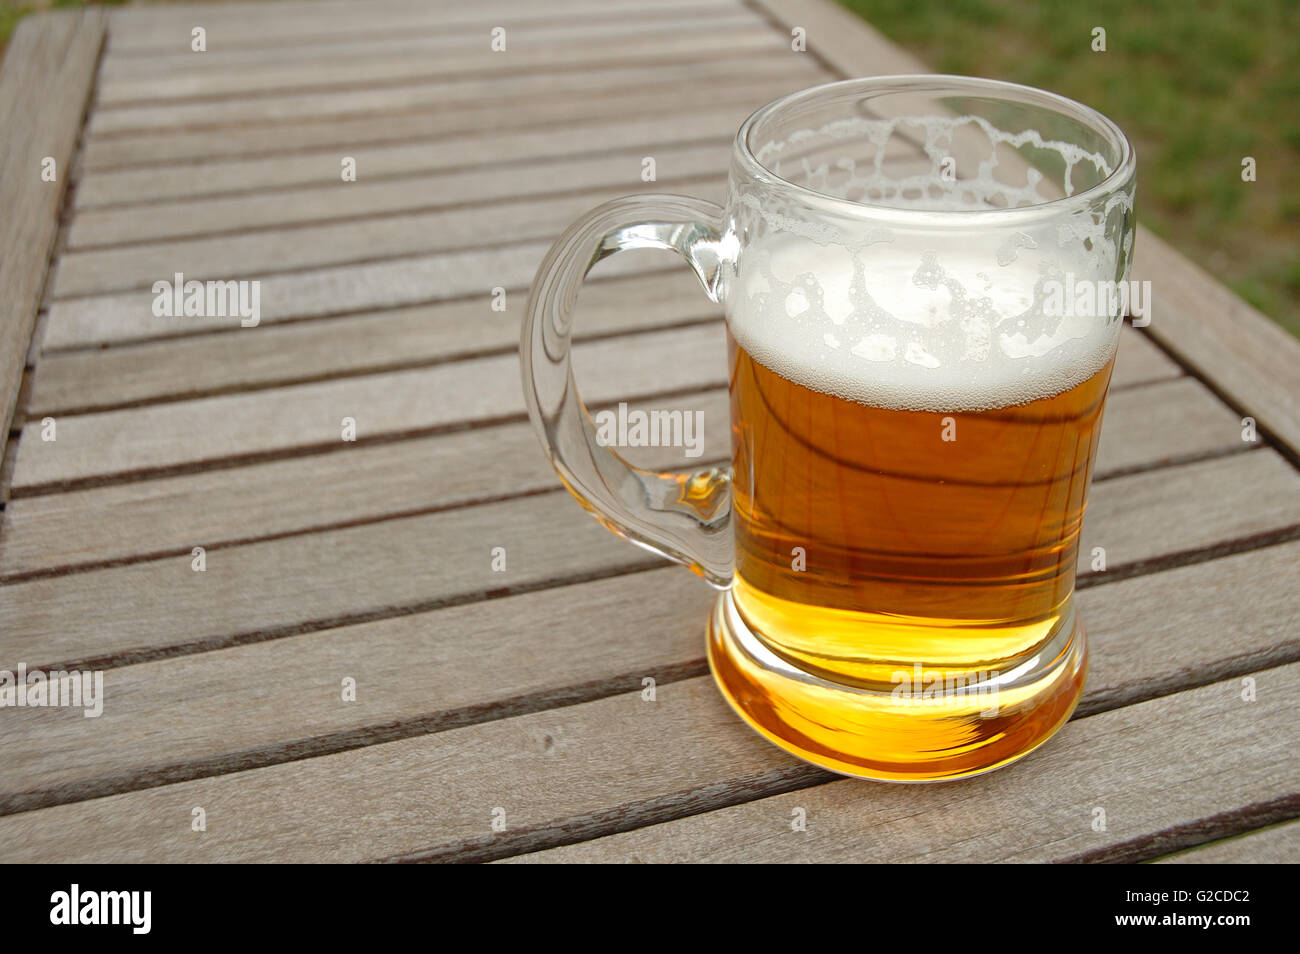 Beer mug on wooden table outdoors - Stock Image